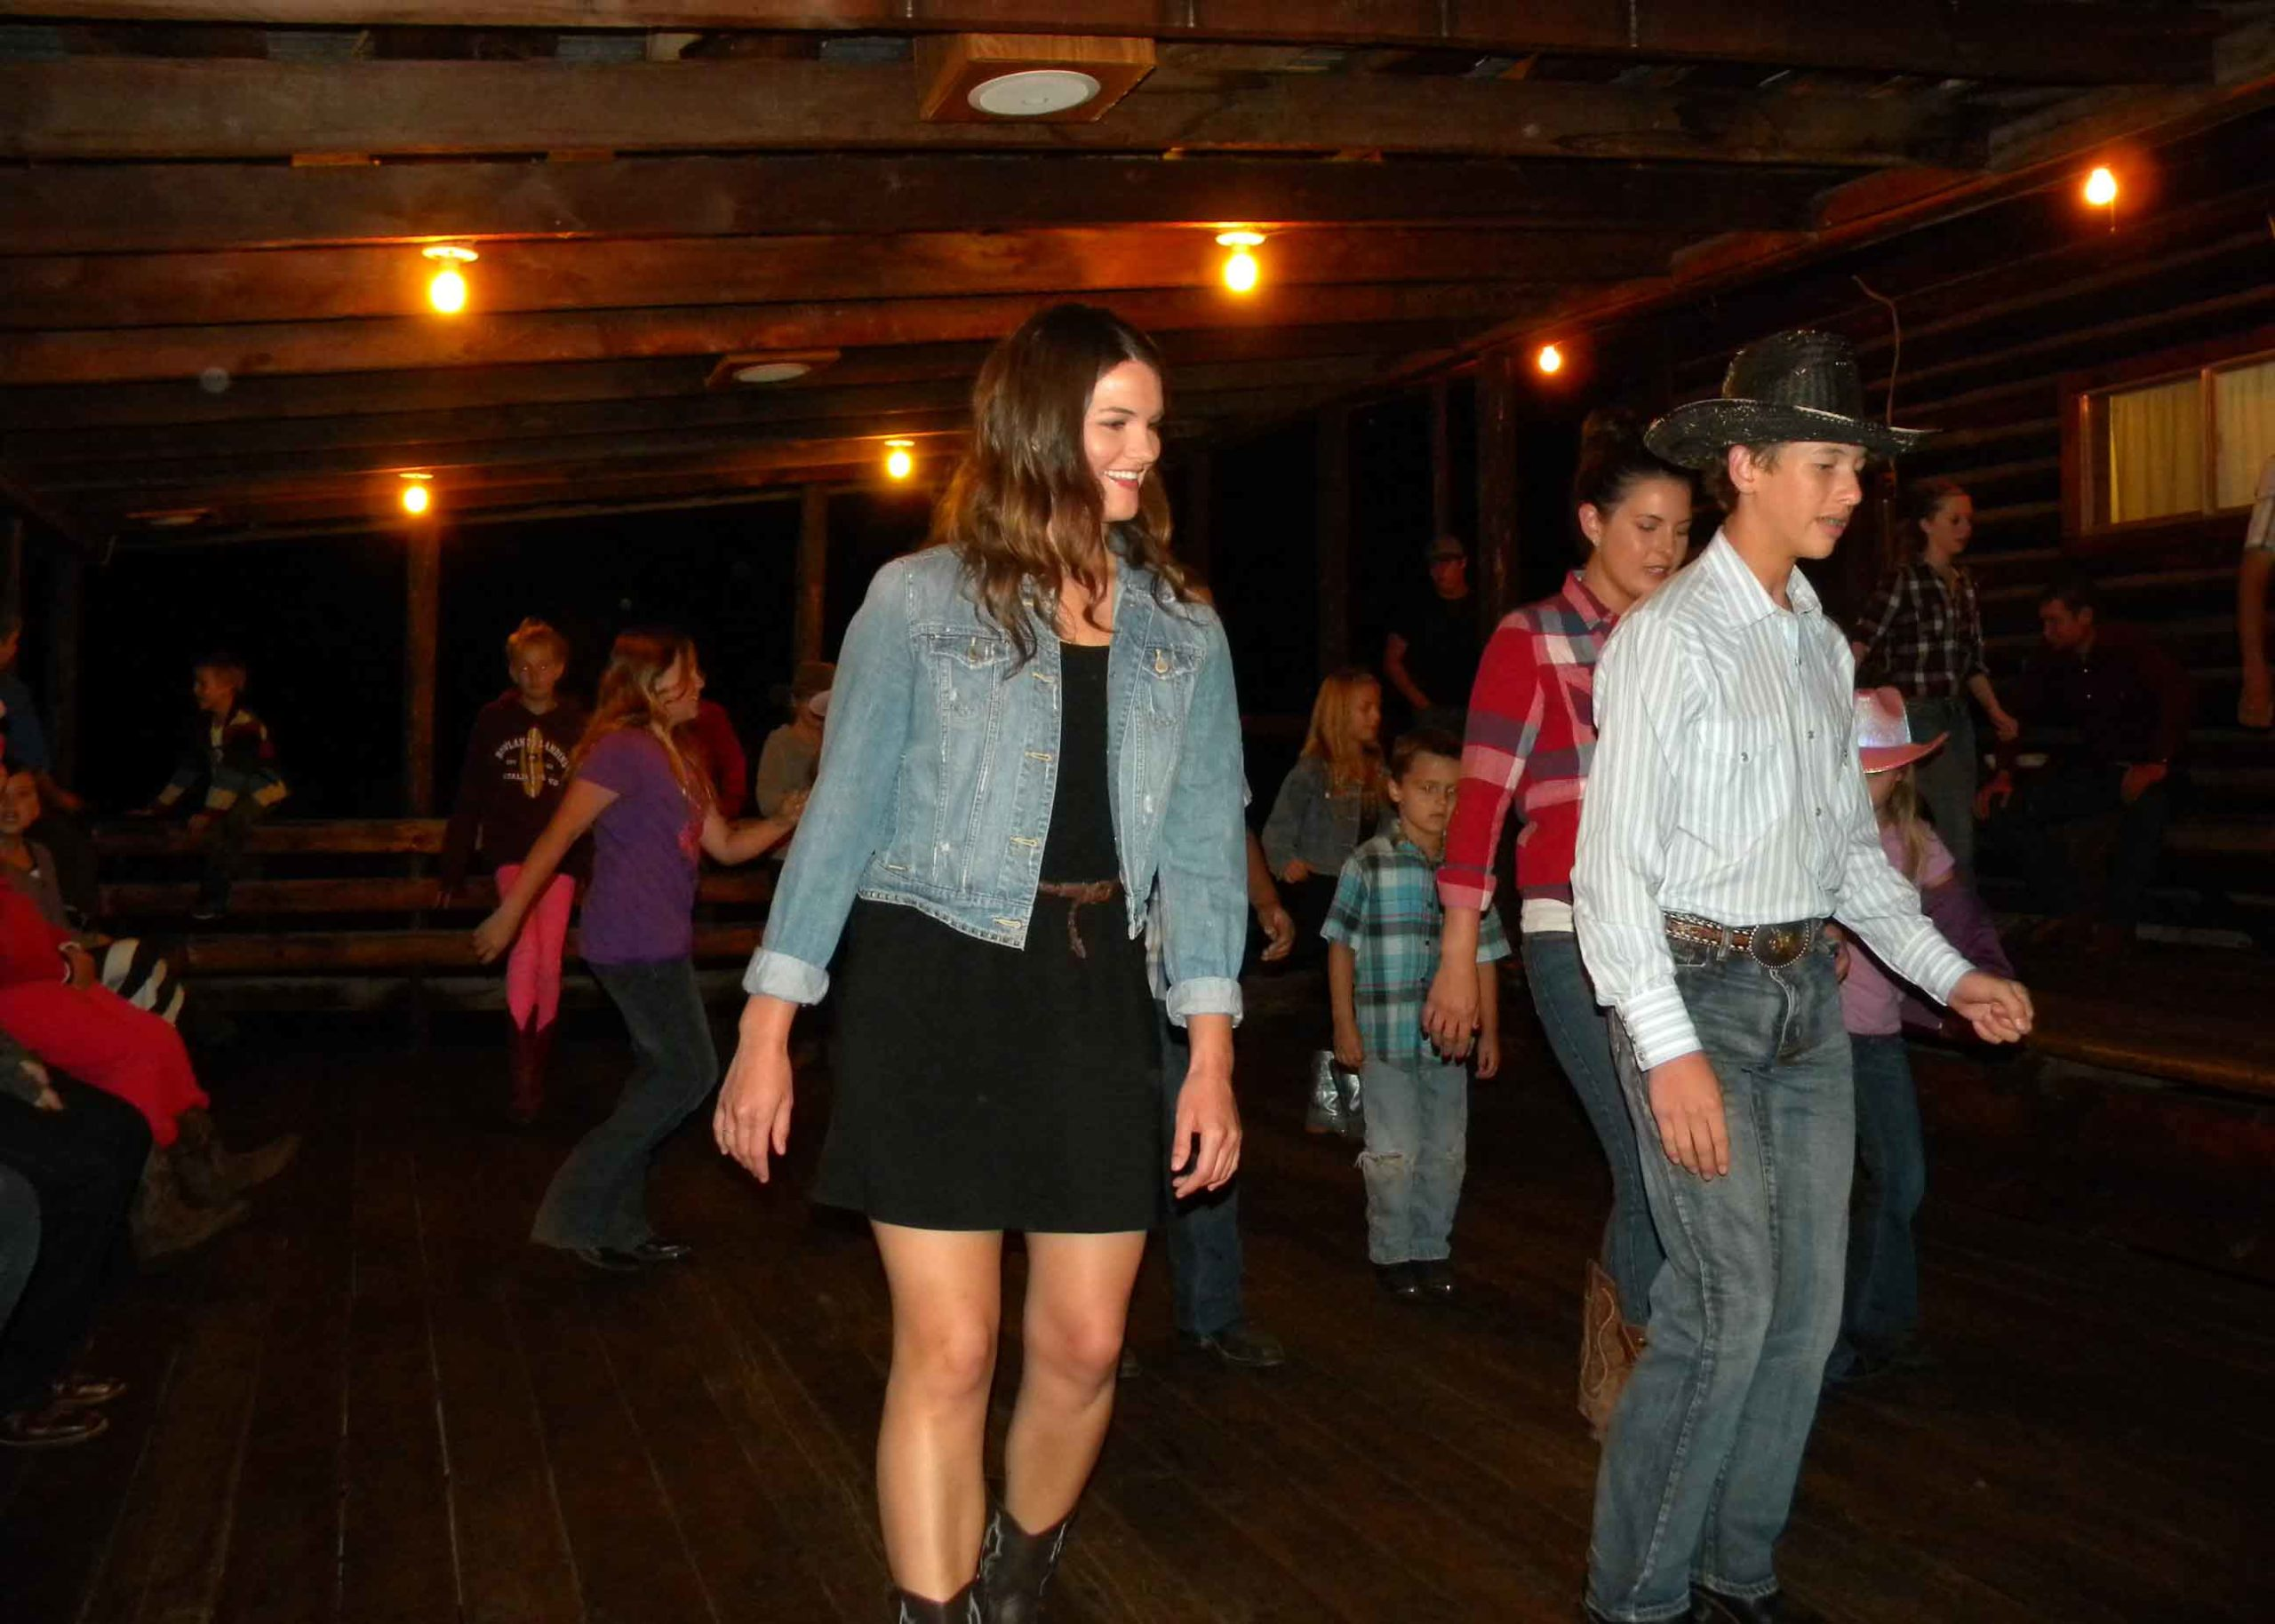 Sprucedale Dancing  Family Vacation Ideas